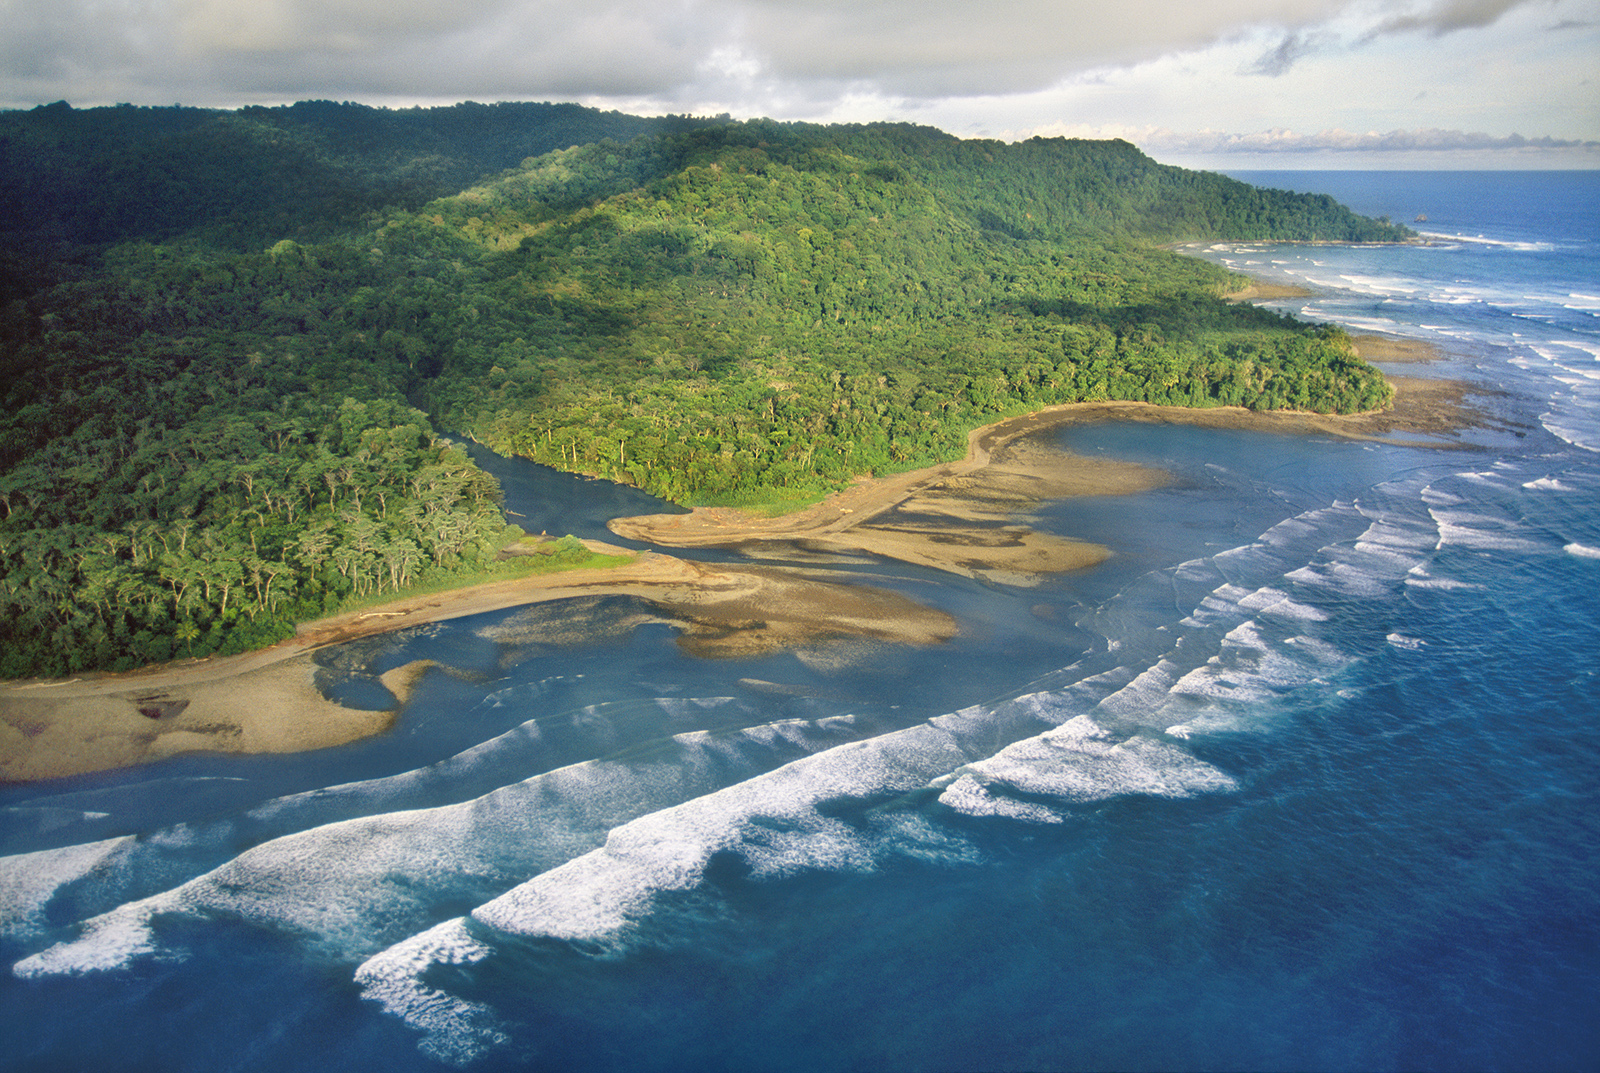 The amazing Corcovado National Park